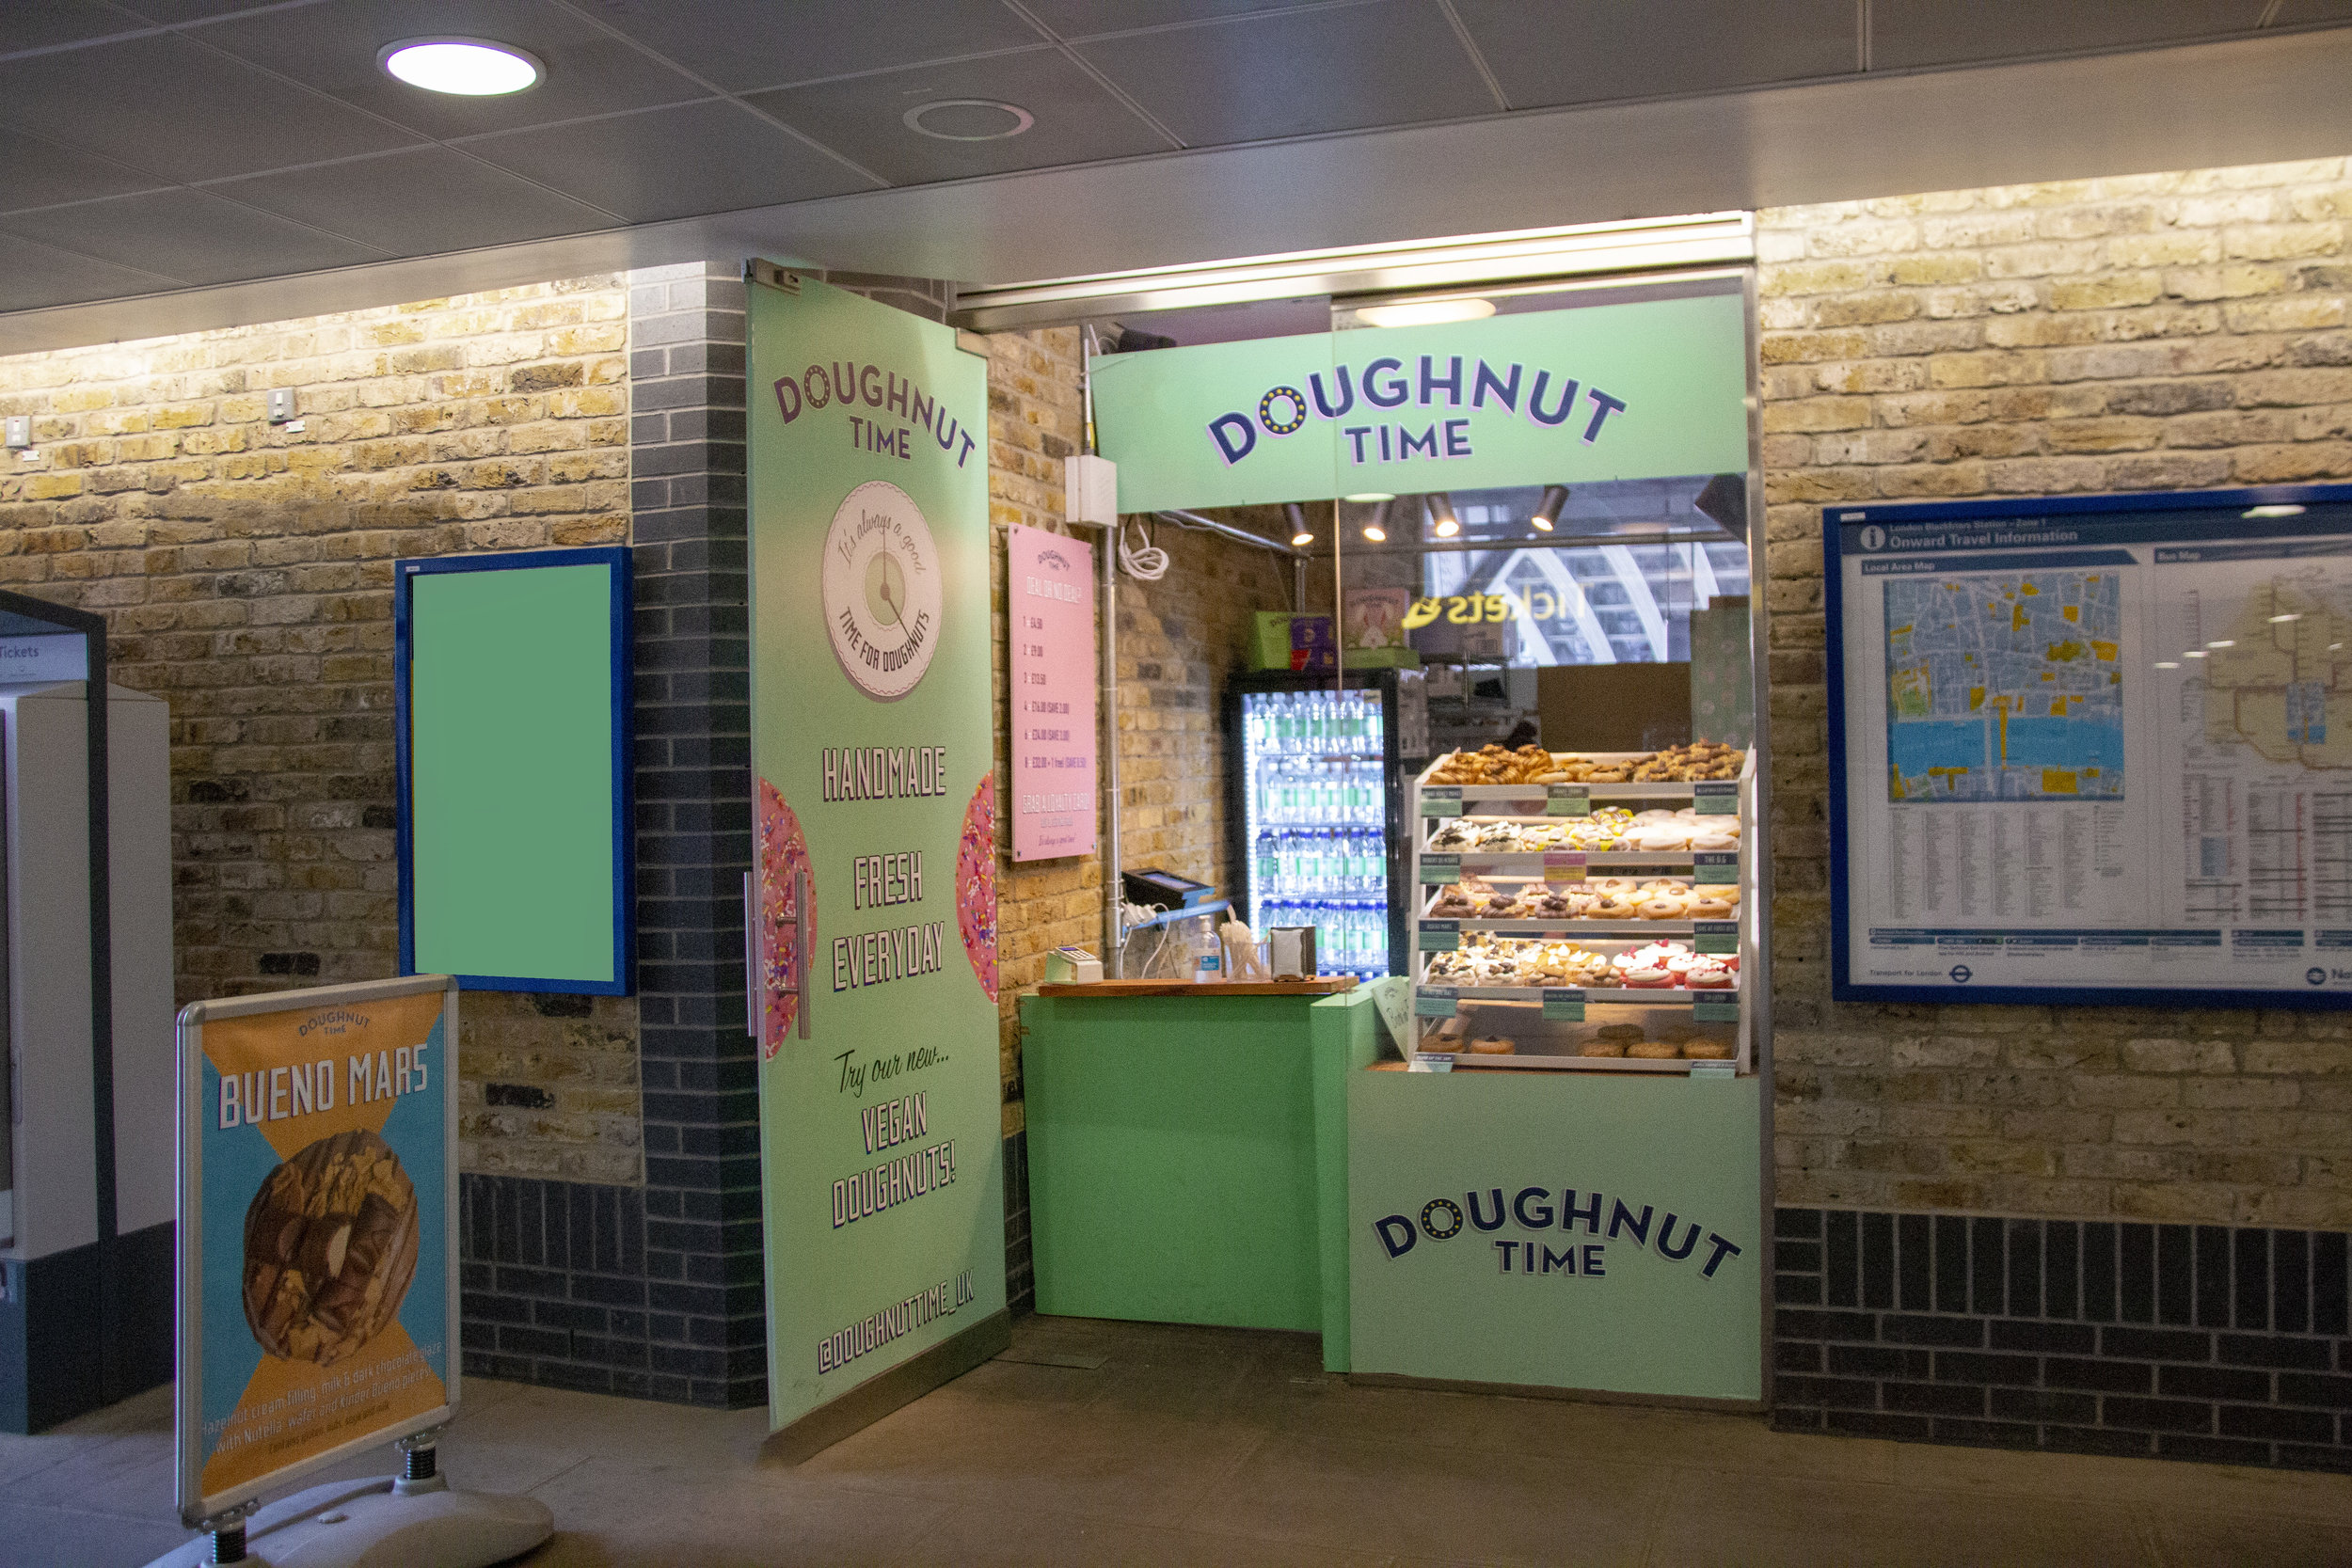 Blackfriars - Blackfriars Station, Southern Concourse, London SE1 9JHMon-Fri: 8am-8pmSat-Sun: 10am-8pm